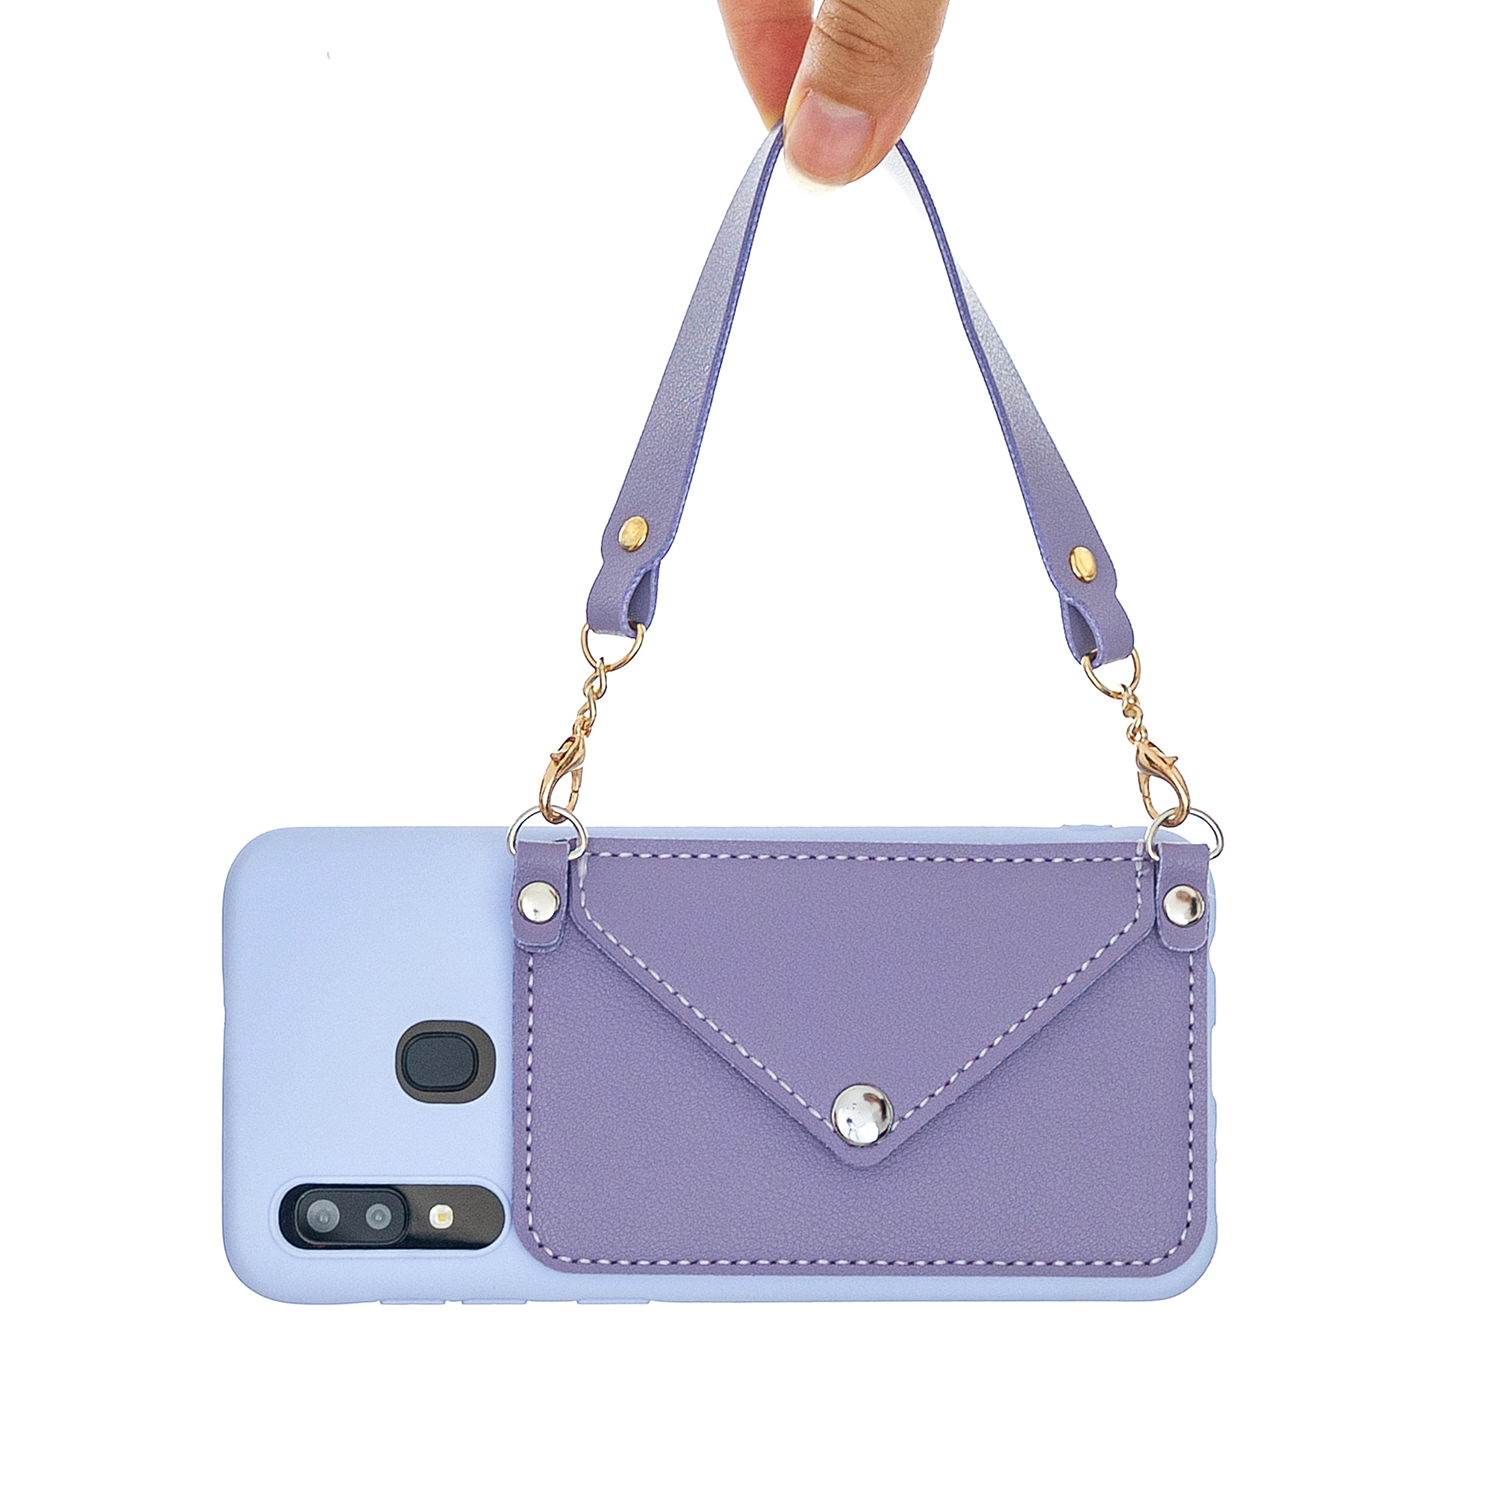 For HUAWEI P20/ P20 Lite/P20 Pro Mobile Phone Cover with Pu Leather Card Holder + Hand Rope + Straddle Rope purple